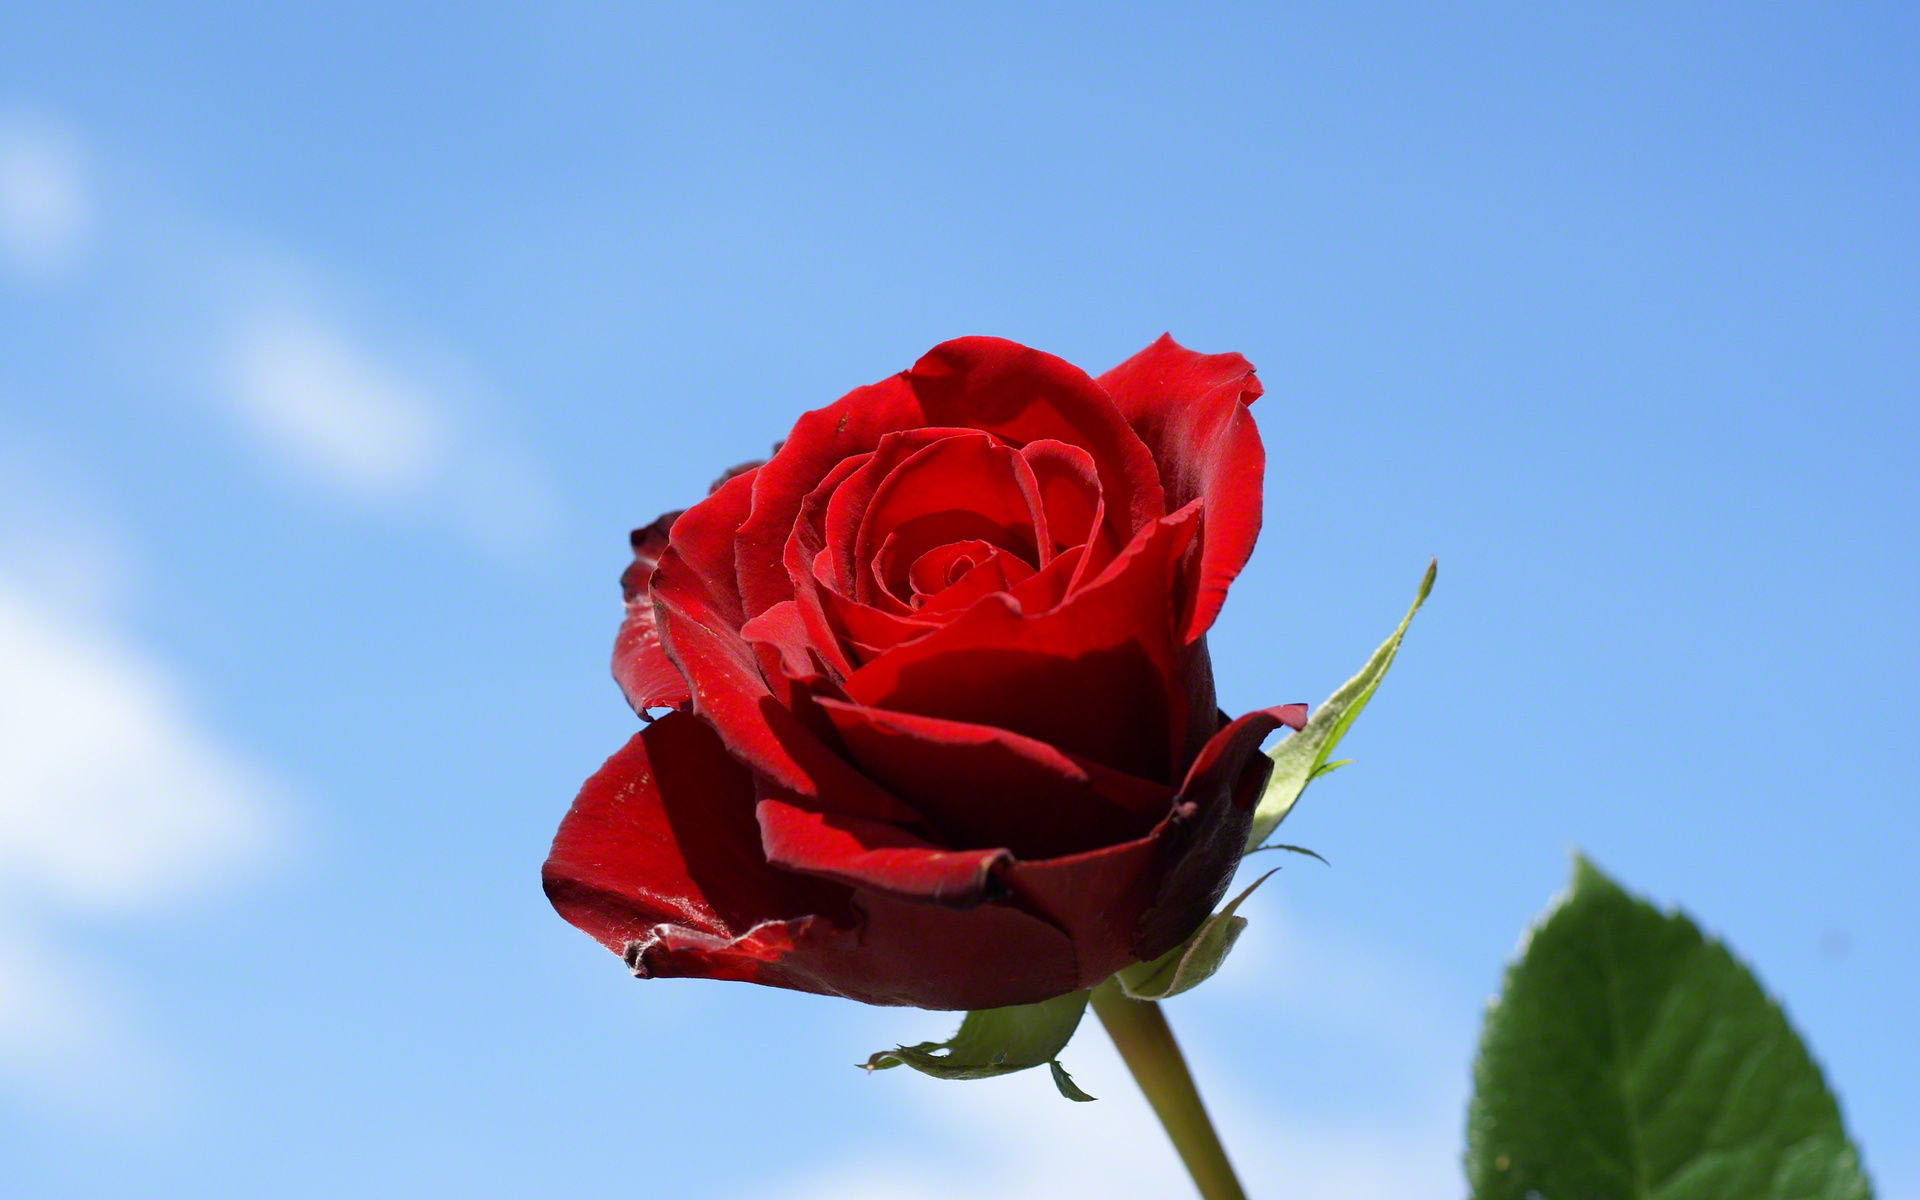 1920x1200 Single rose with blue sky background